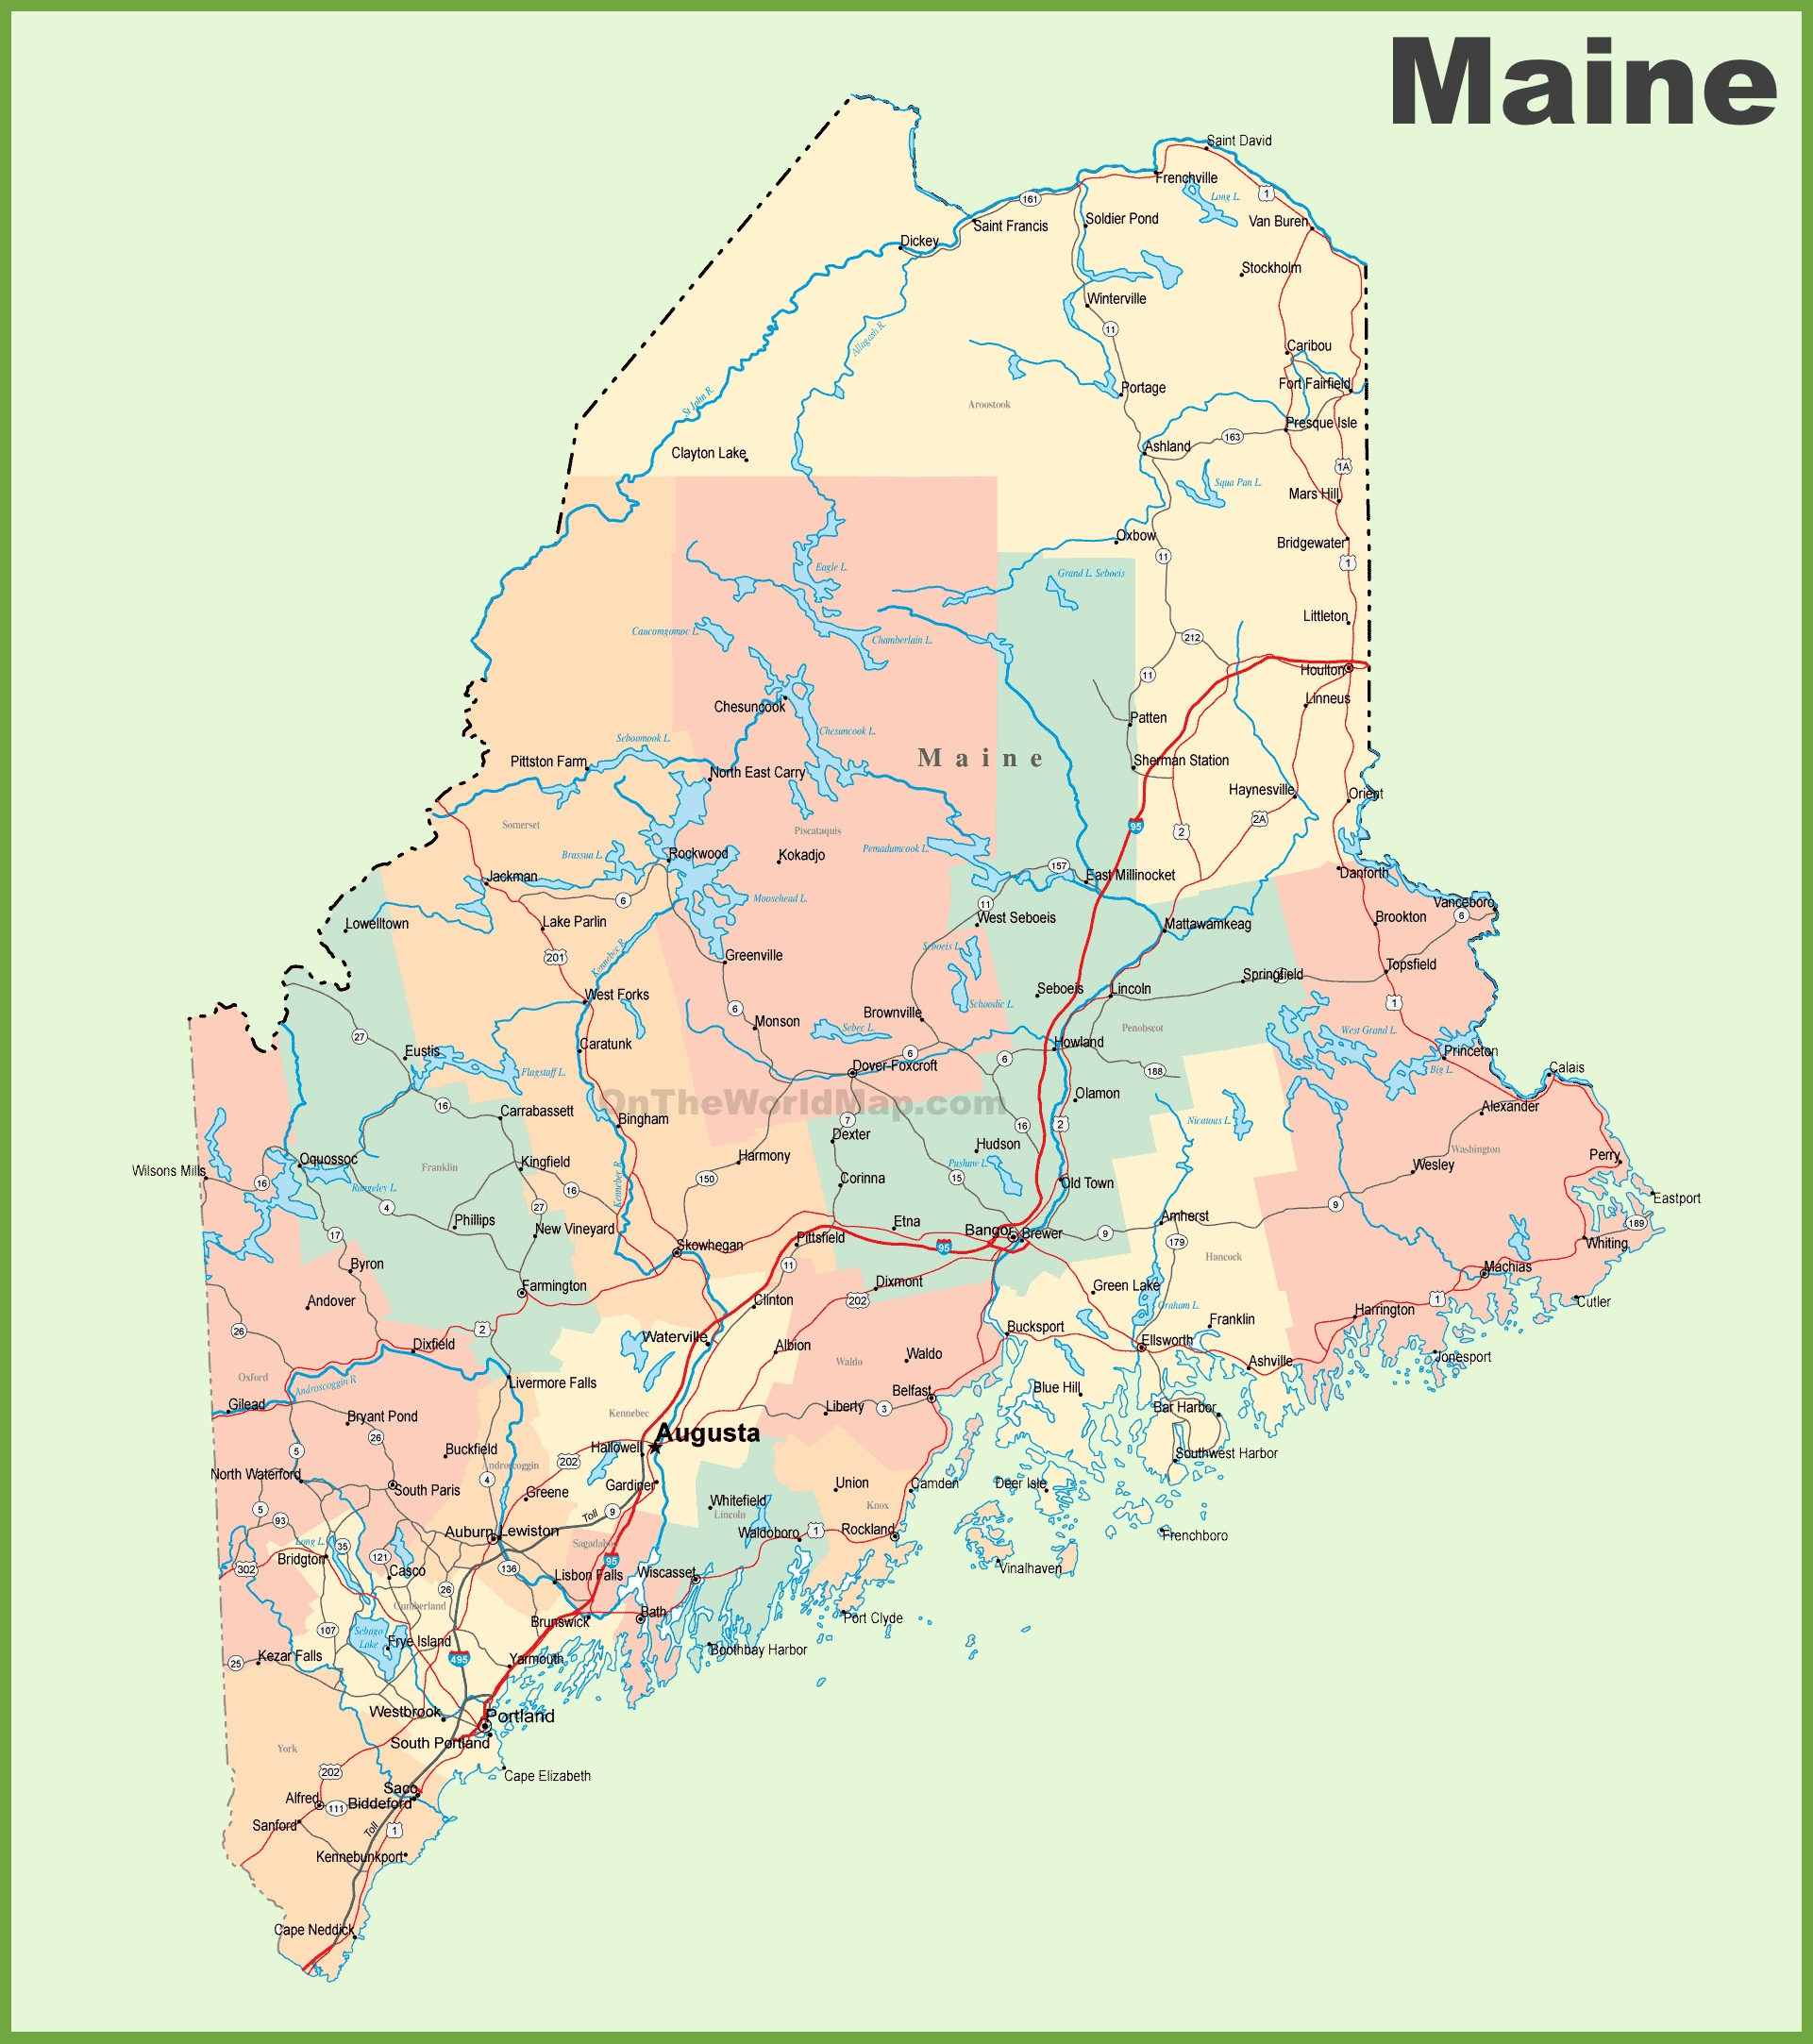 State Of Maine Map With Cities.Road Map Of Maine With Cities